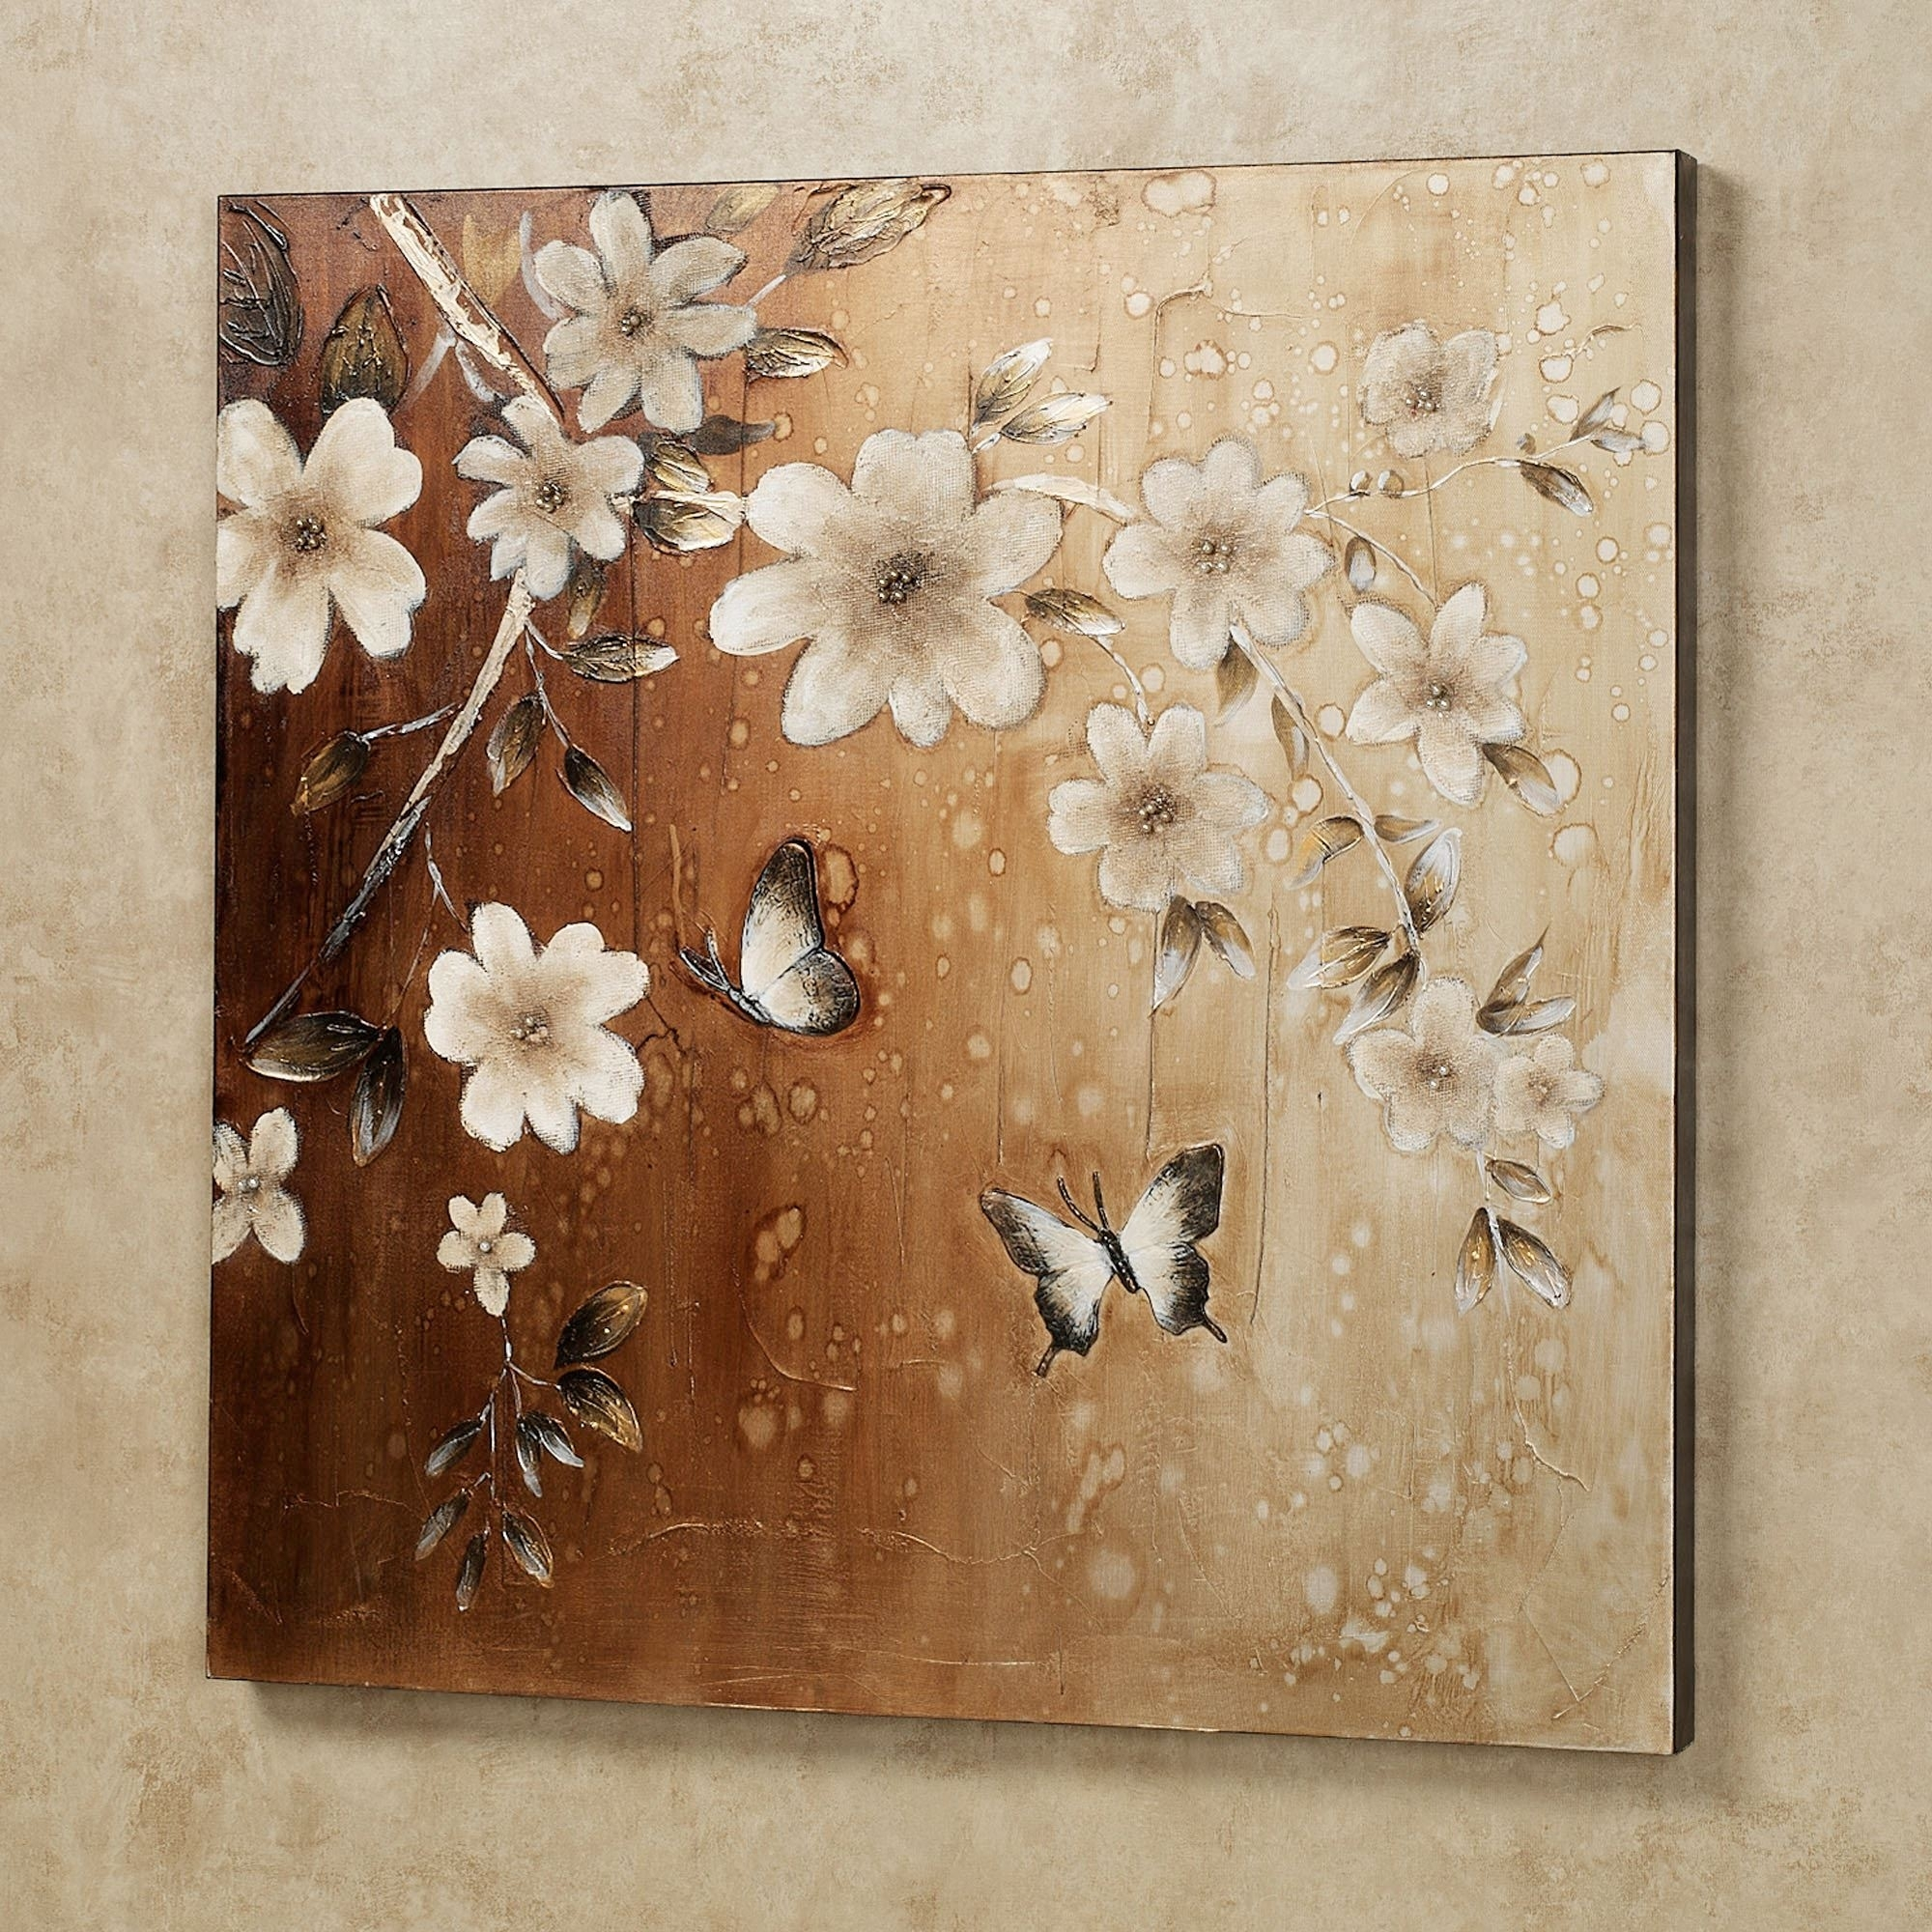 Midday Sun Butterfly Floral Canvas Wall Art Intended For Latest Abstract Butterfly Wall Art (View 14 of 20)